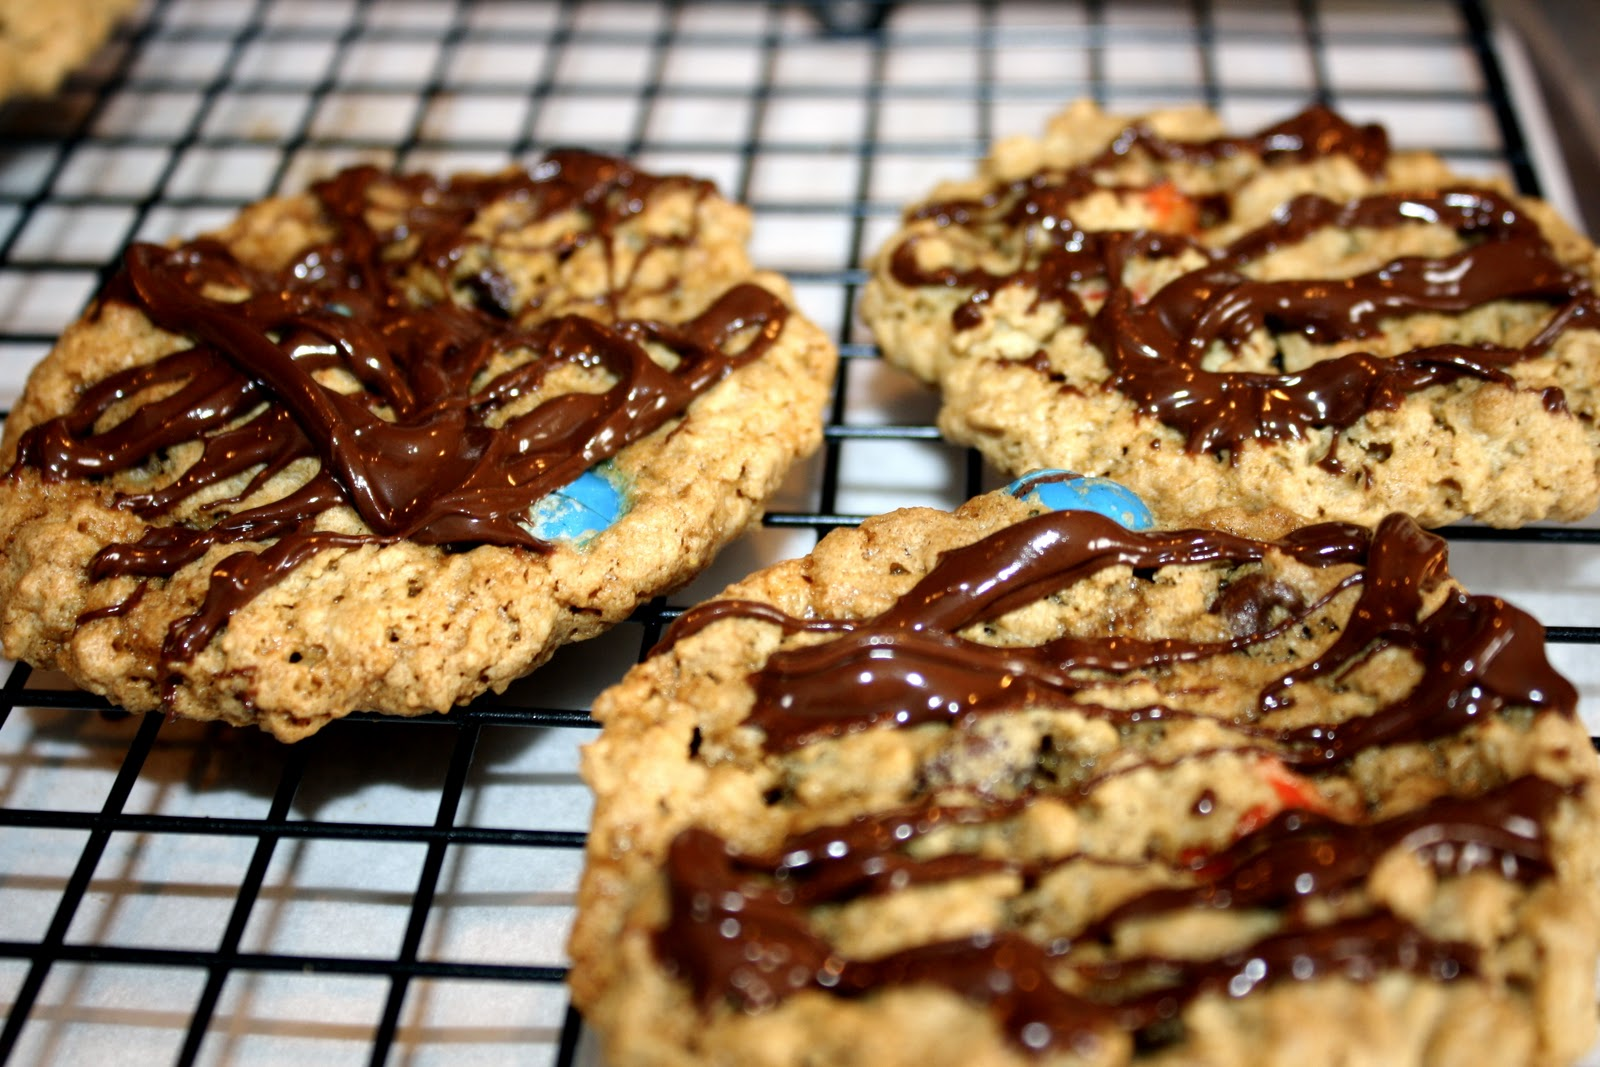 Everyone knows Paula Deen is the queen of desserts...and I love this dessert of hers! Monster cookies. I adapted her recipe slightly with more M&M's and ...